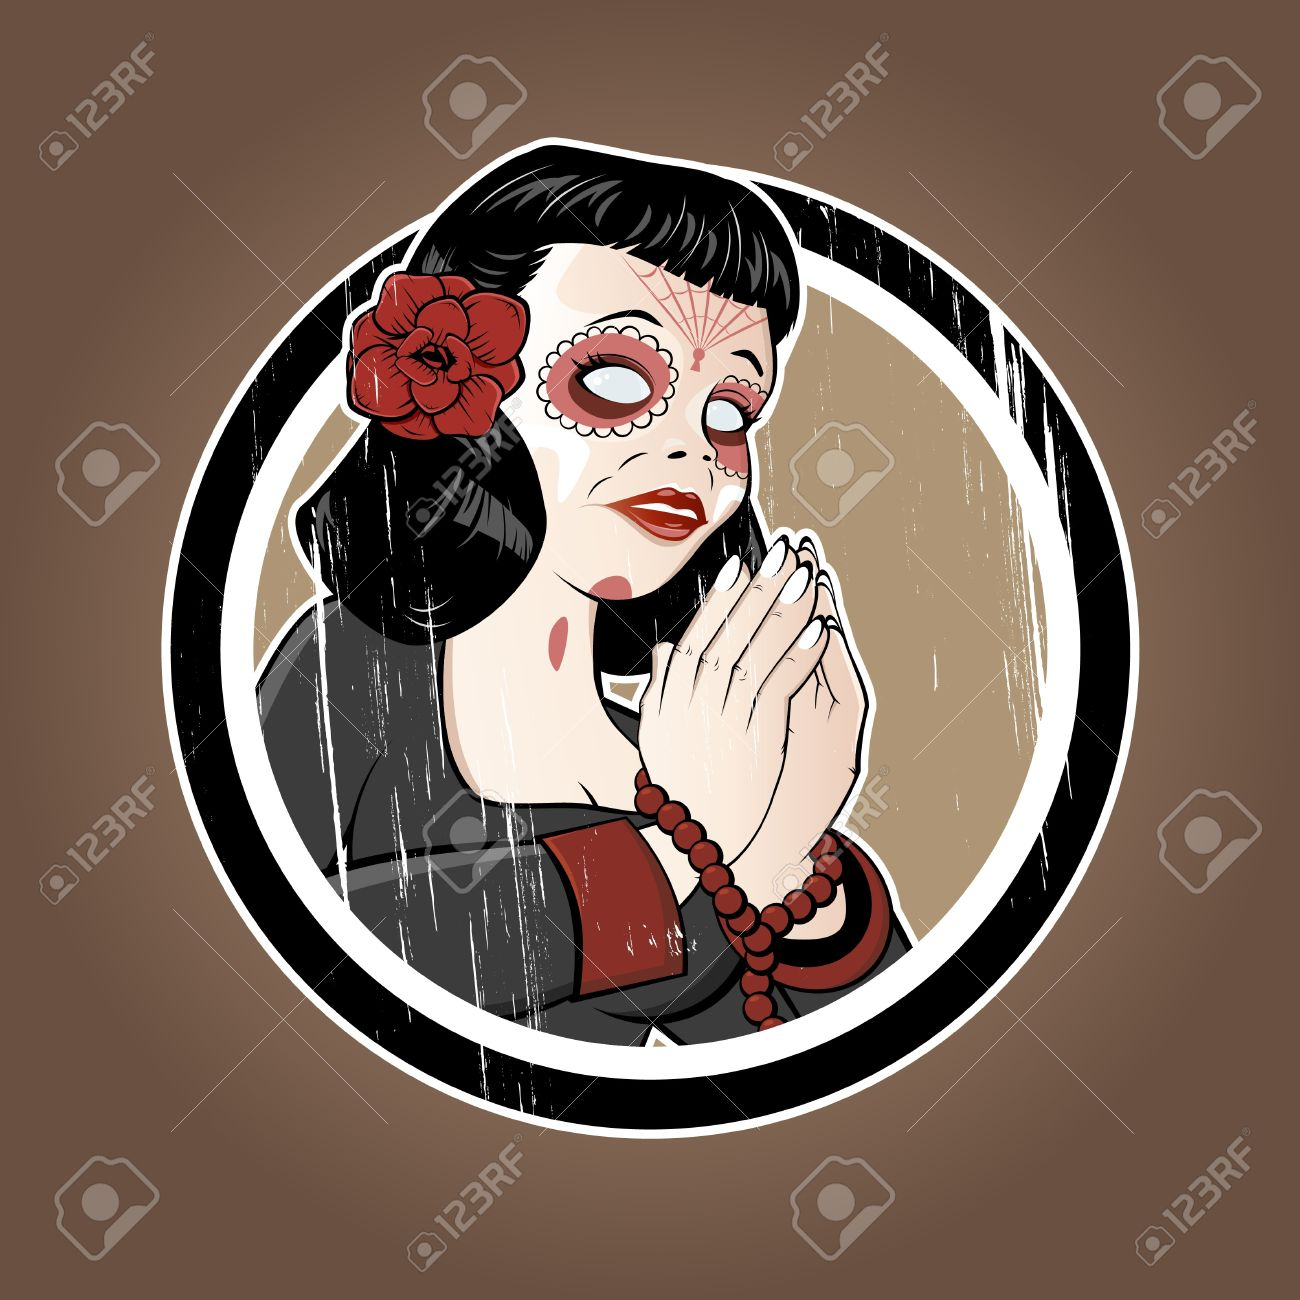 Illustration Of Santa Muerte Royalty Free Cliparts, Vectors, And.